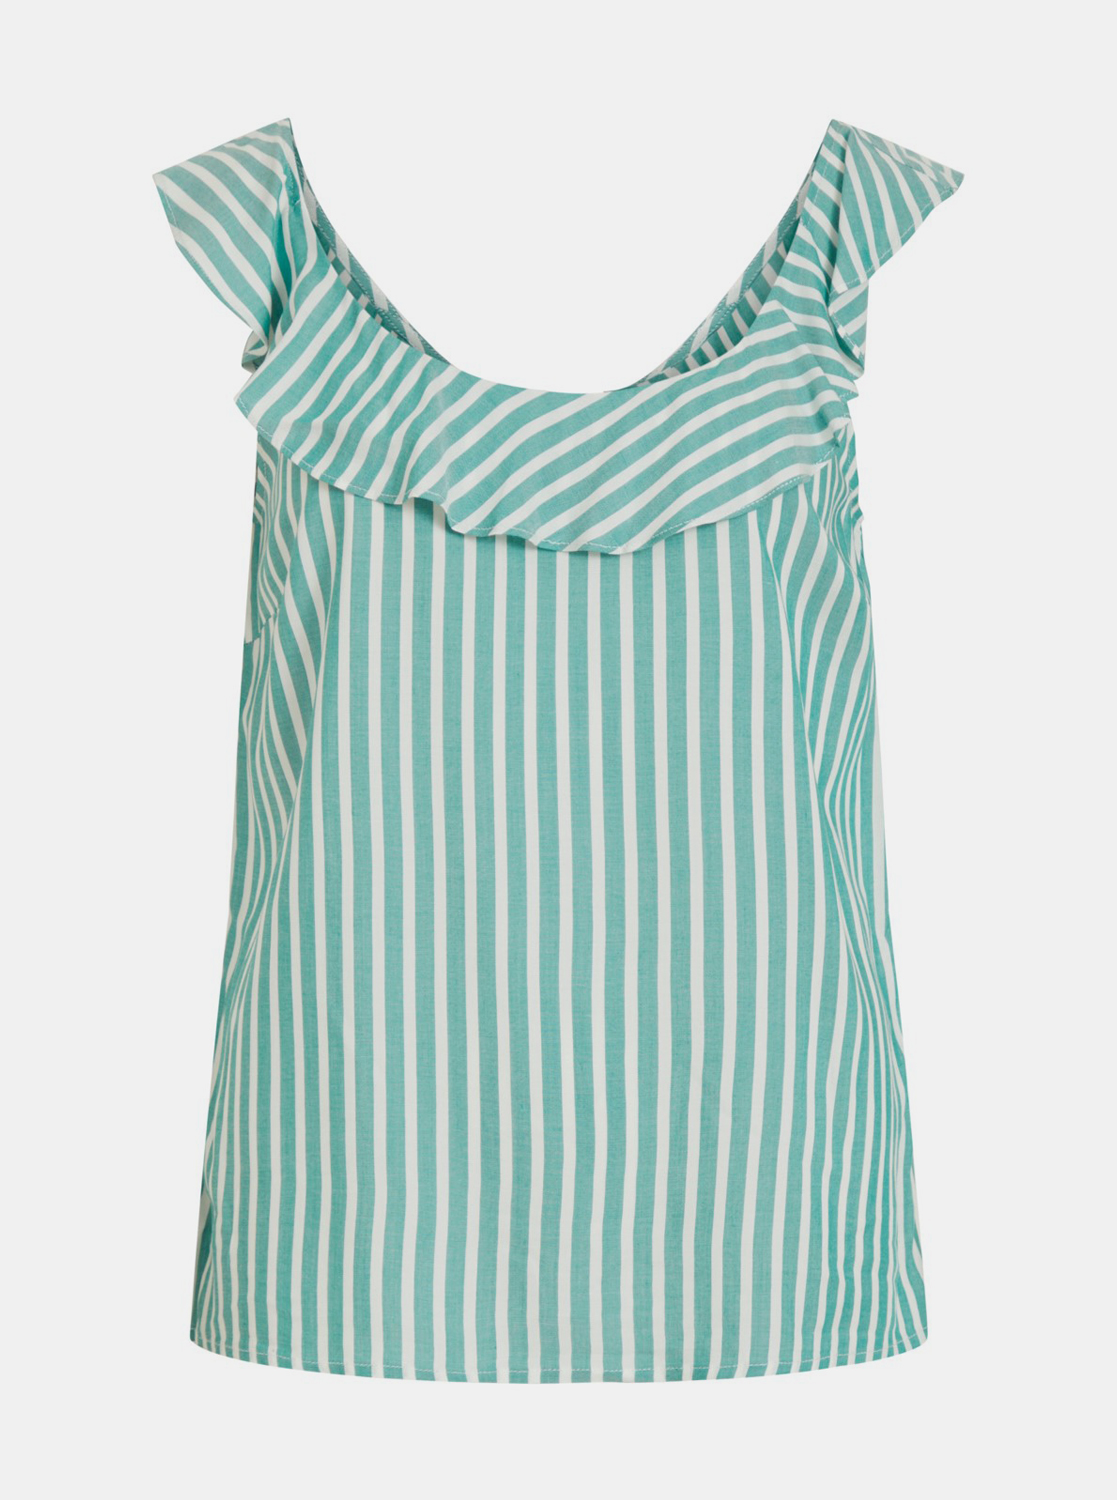 Turquoise striped top VILA